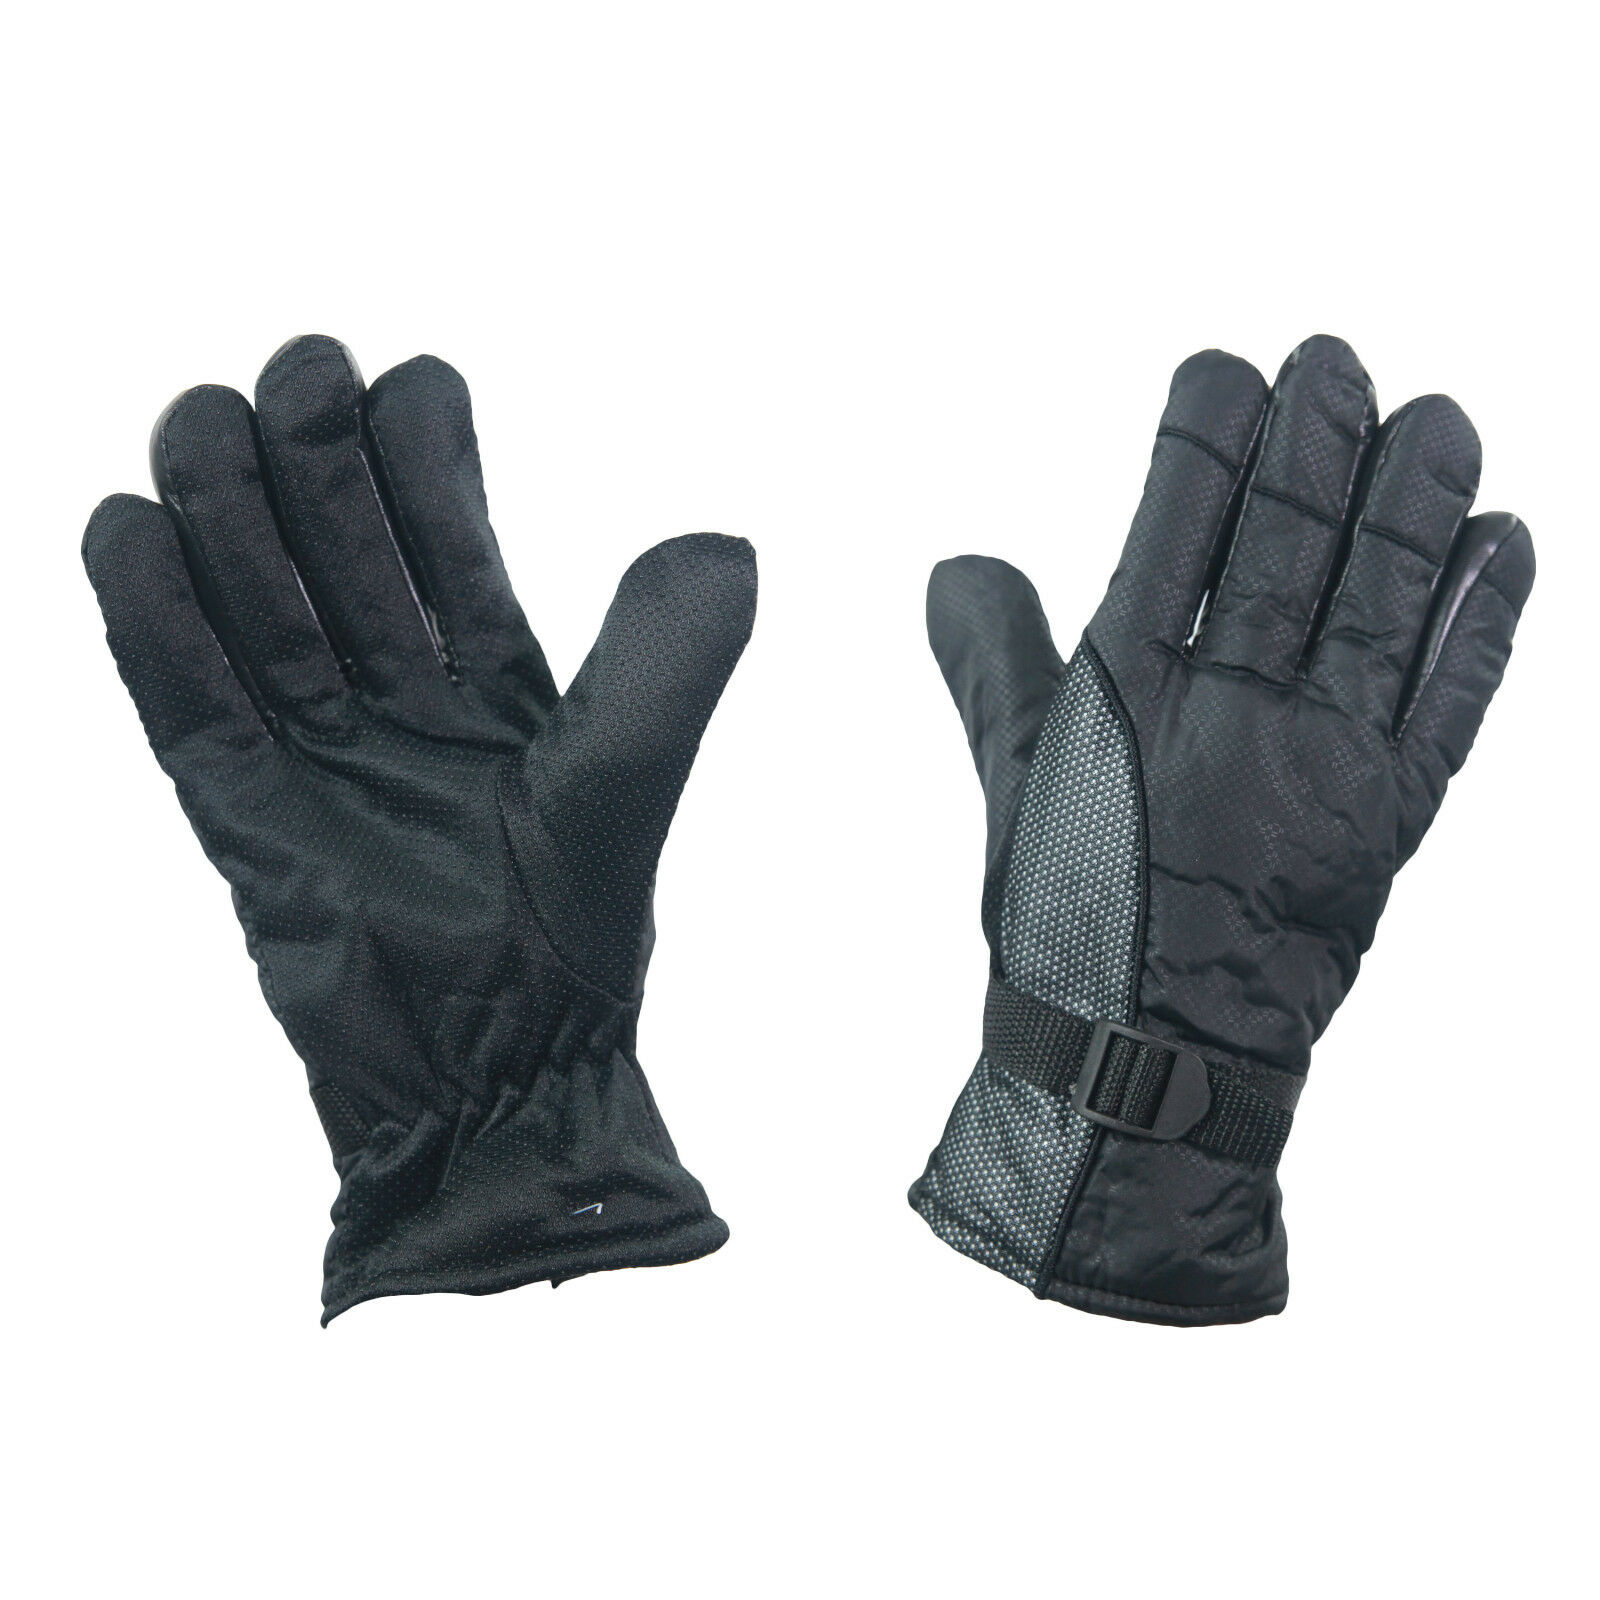 G112 MENS OUTDOOR WINTER WARM SHOWER PROOF BREATHABLE SKI GLOVE SNOW HIKE GLOVES